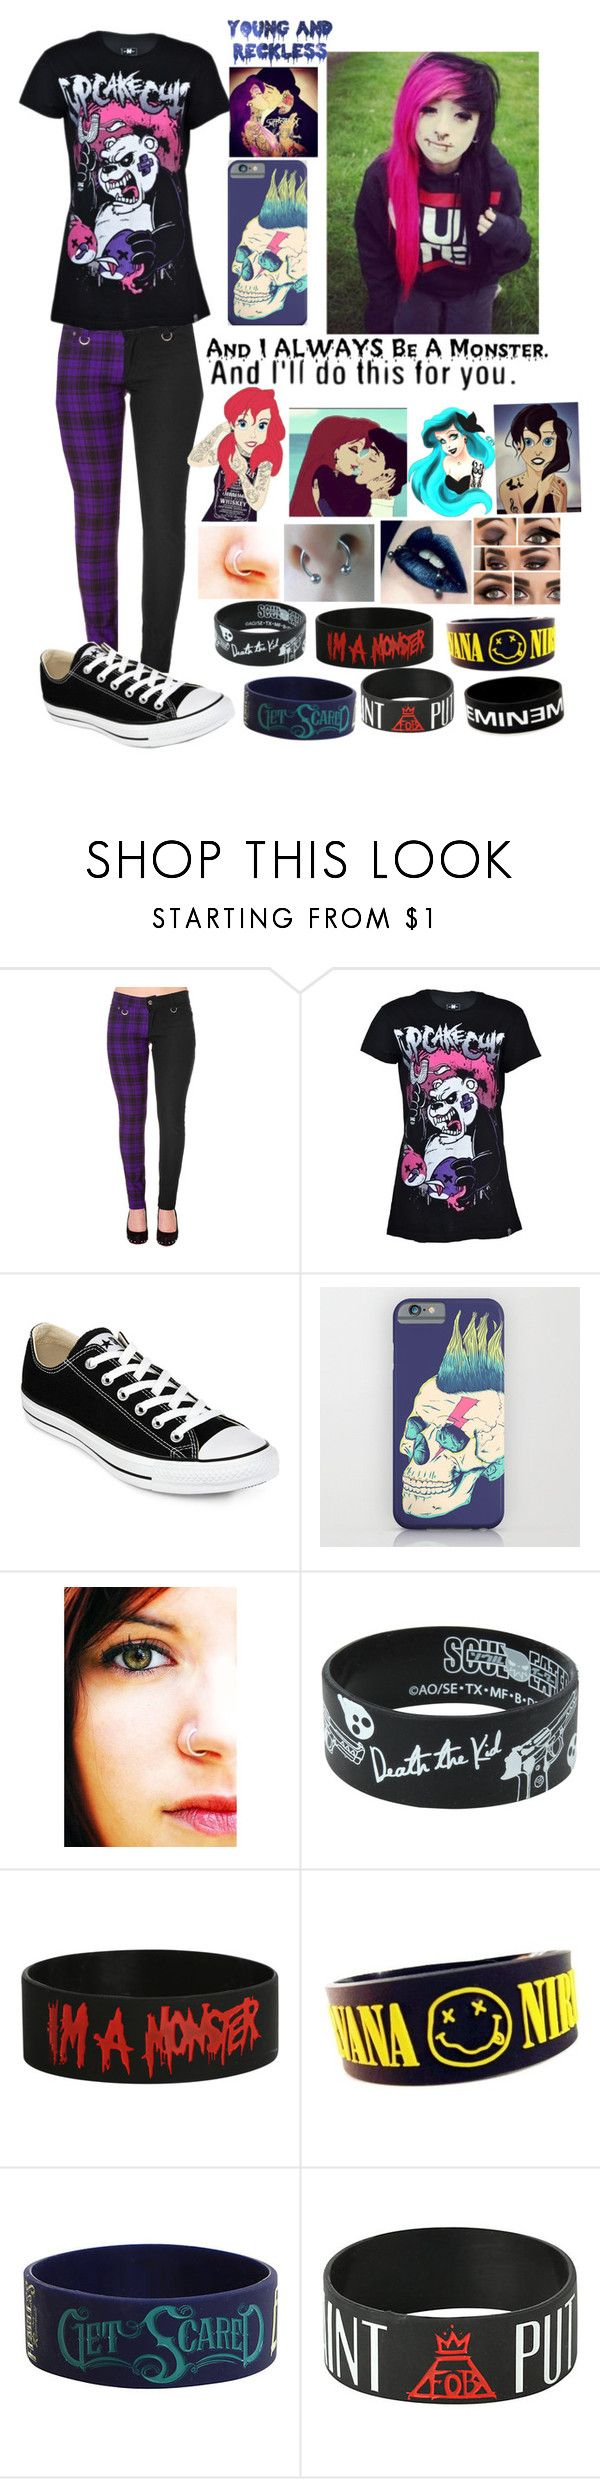 """Emo Teen"" by blvrryfacee ❤ liked on Polyvore featuring Mode, Converse, Disney, Young & Reckless und Warpaint"